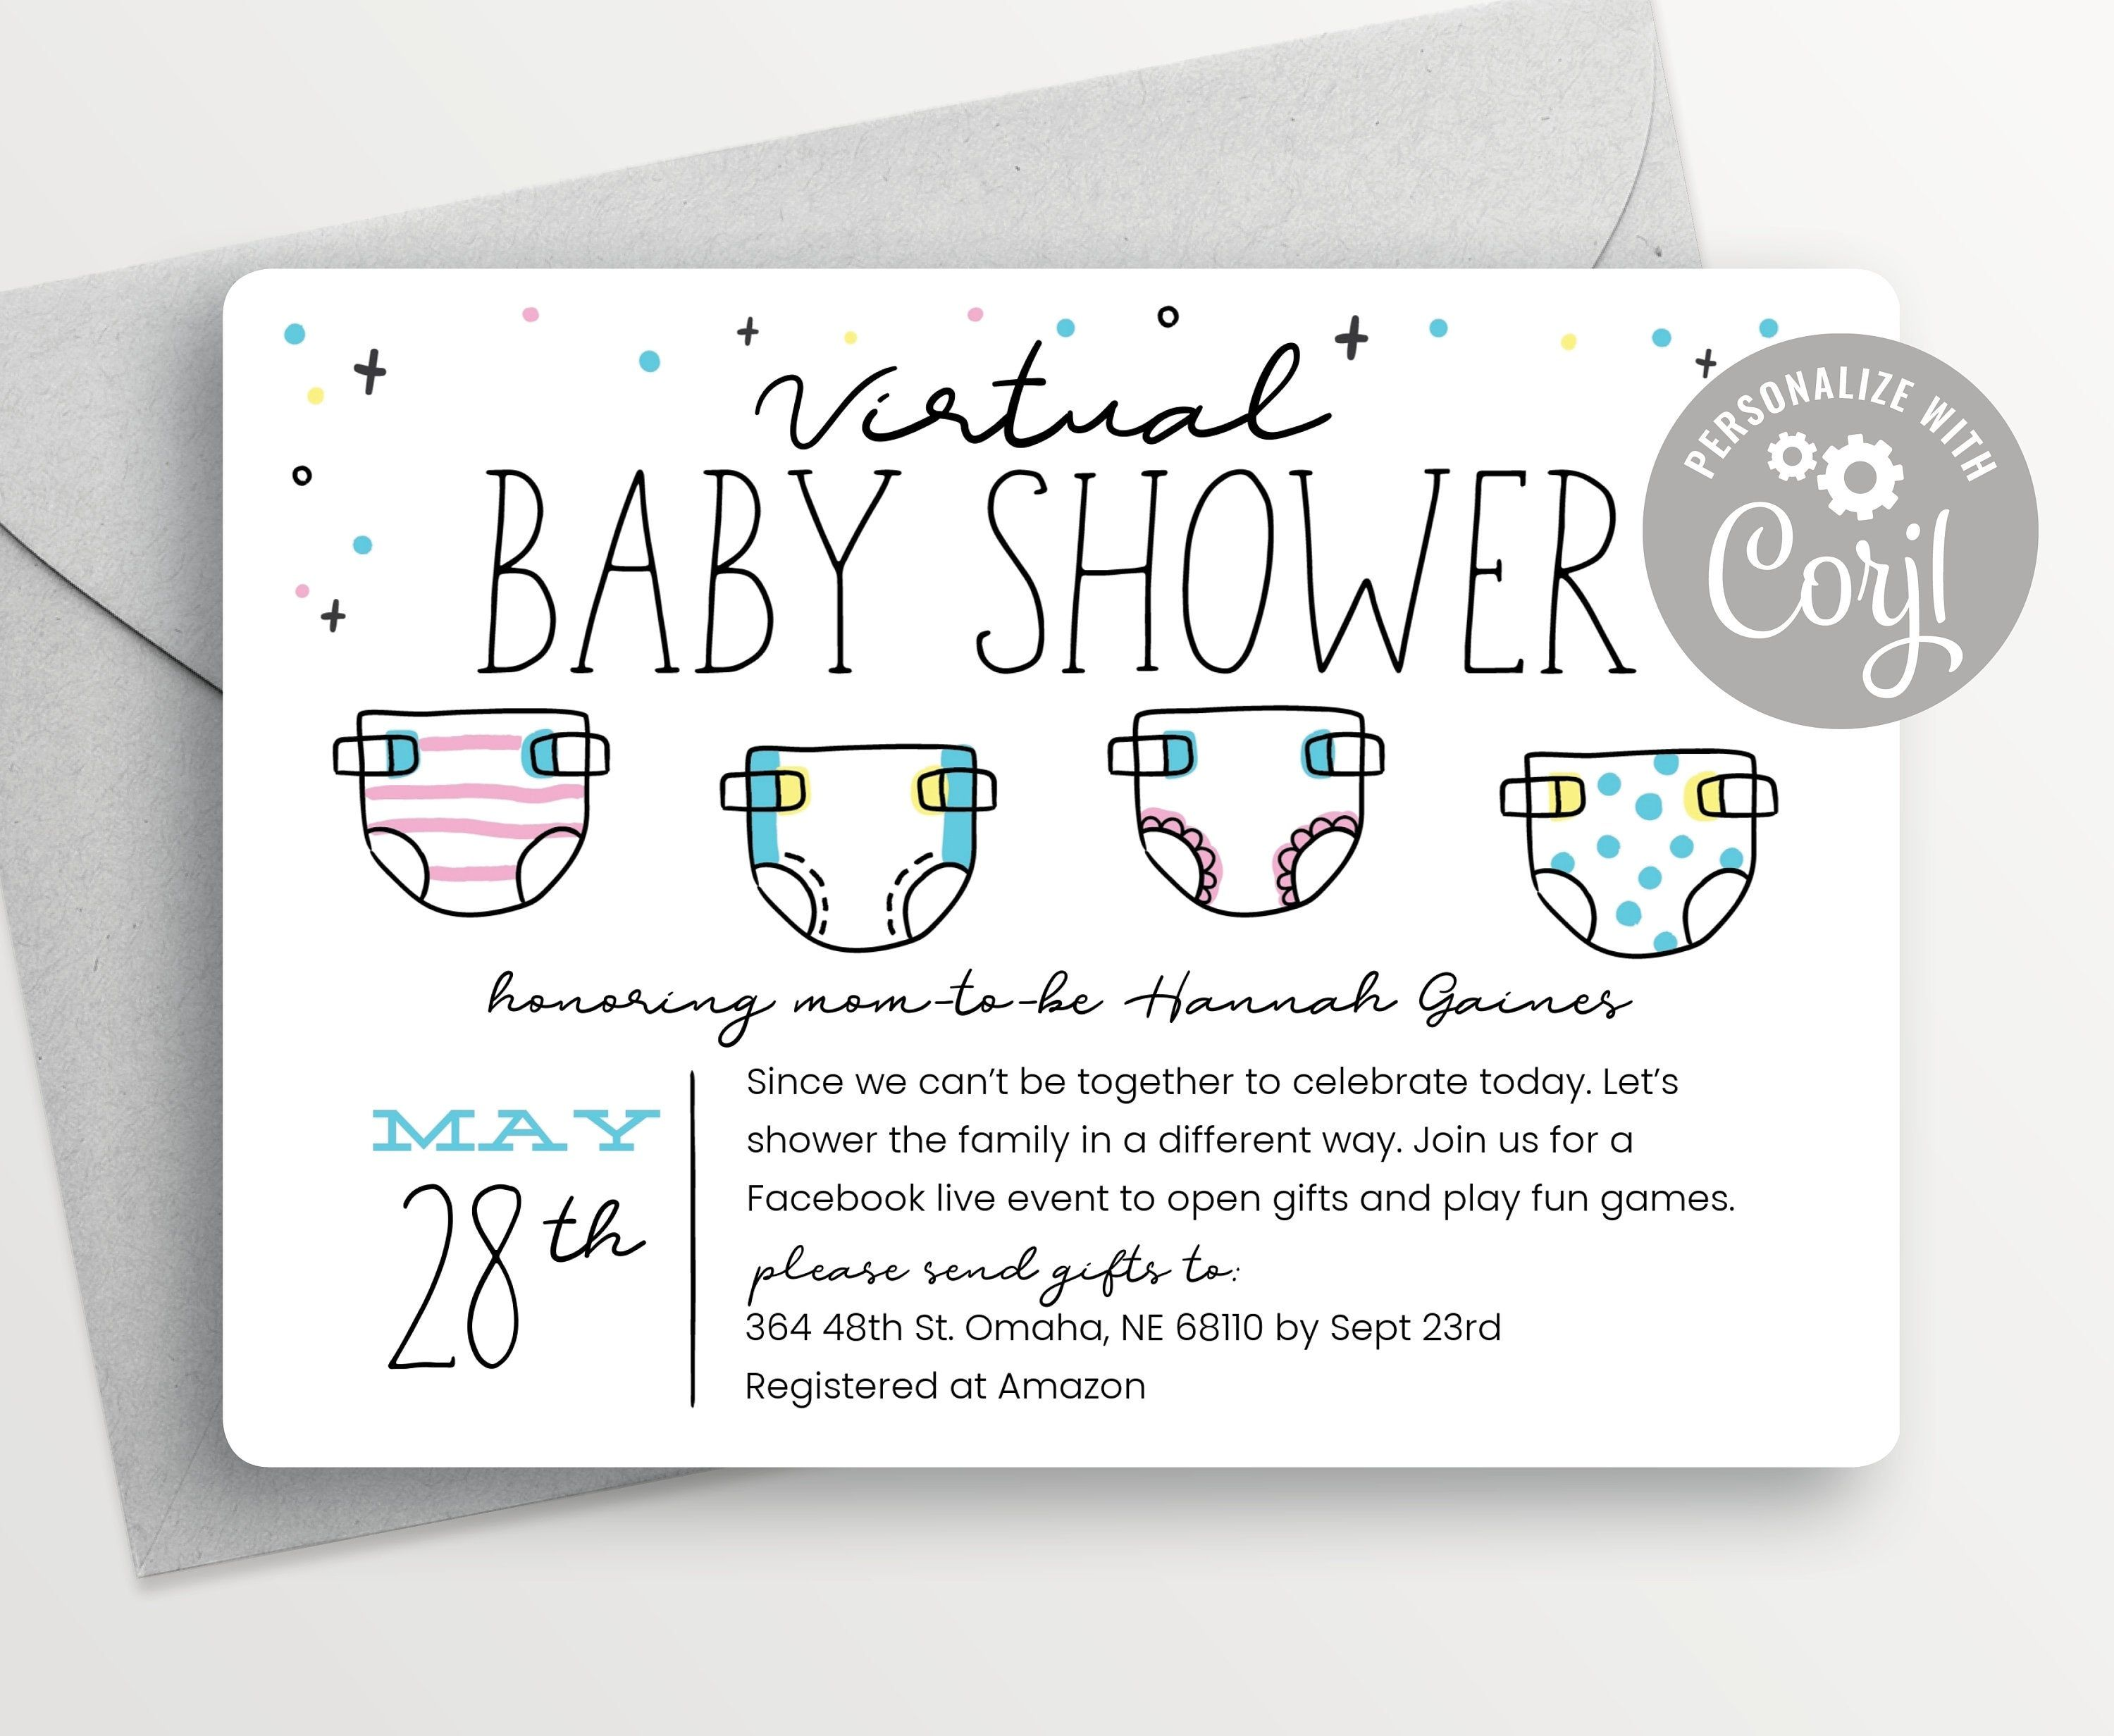 Shower By Mail Diaper Baby Shower Invitation Virtual Gender Etsy Baby Shower Invitations Diaper Baby Shower Invitations Baby Shower Diapers Diaper baby shower invitations template